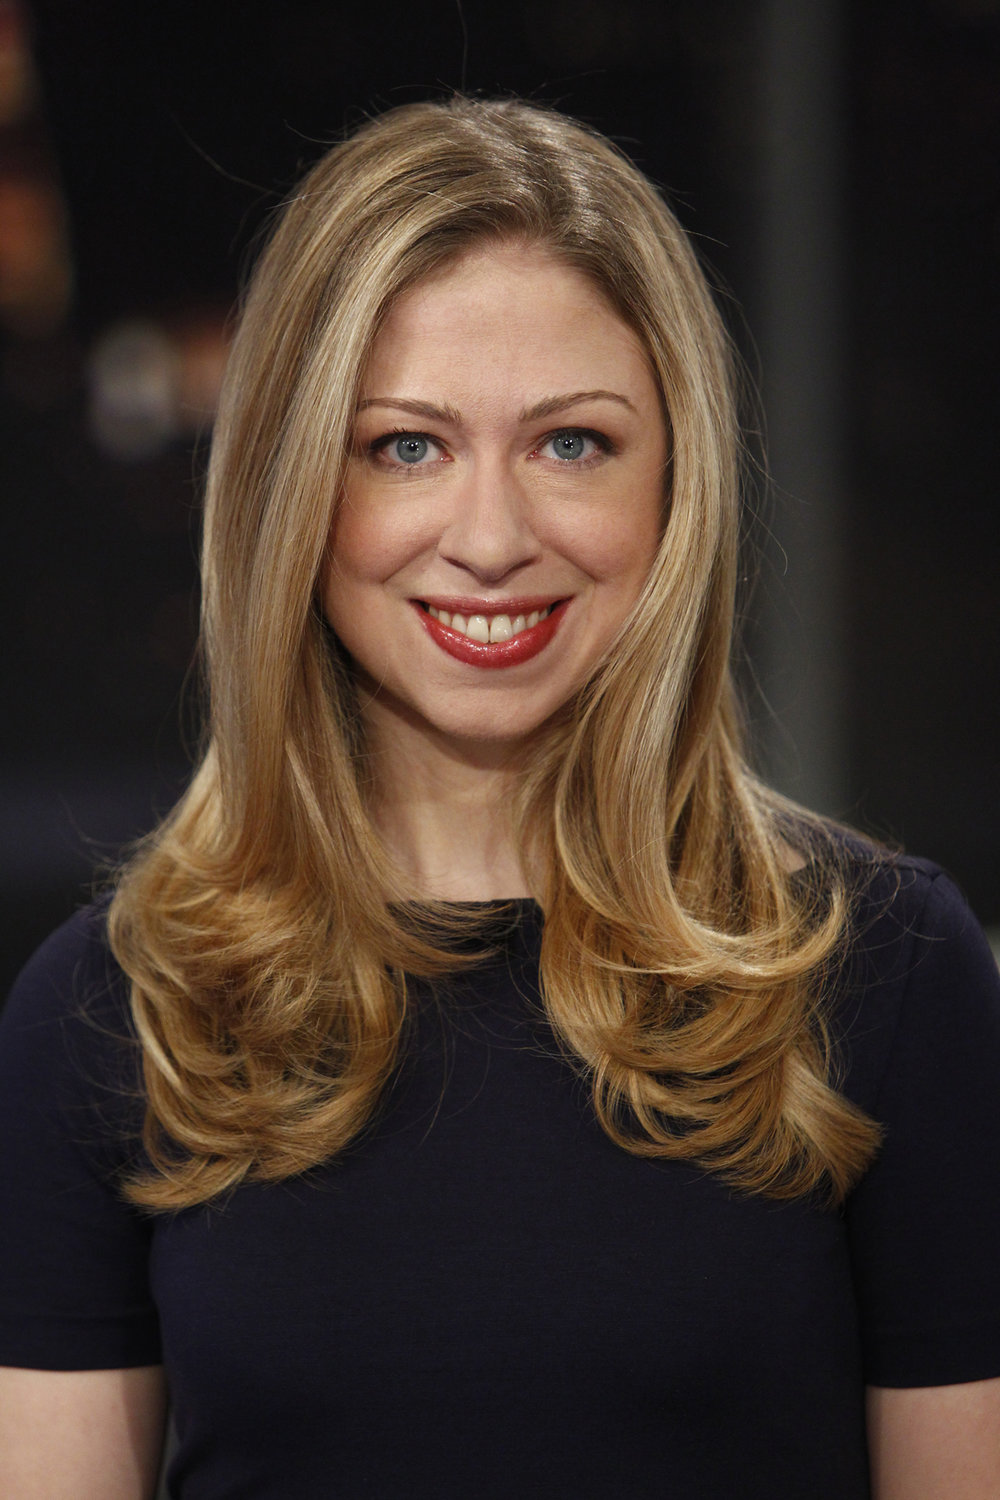 Chelsea Clinton – Vice Chair, Clinton Foundation